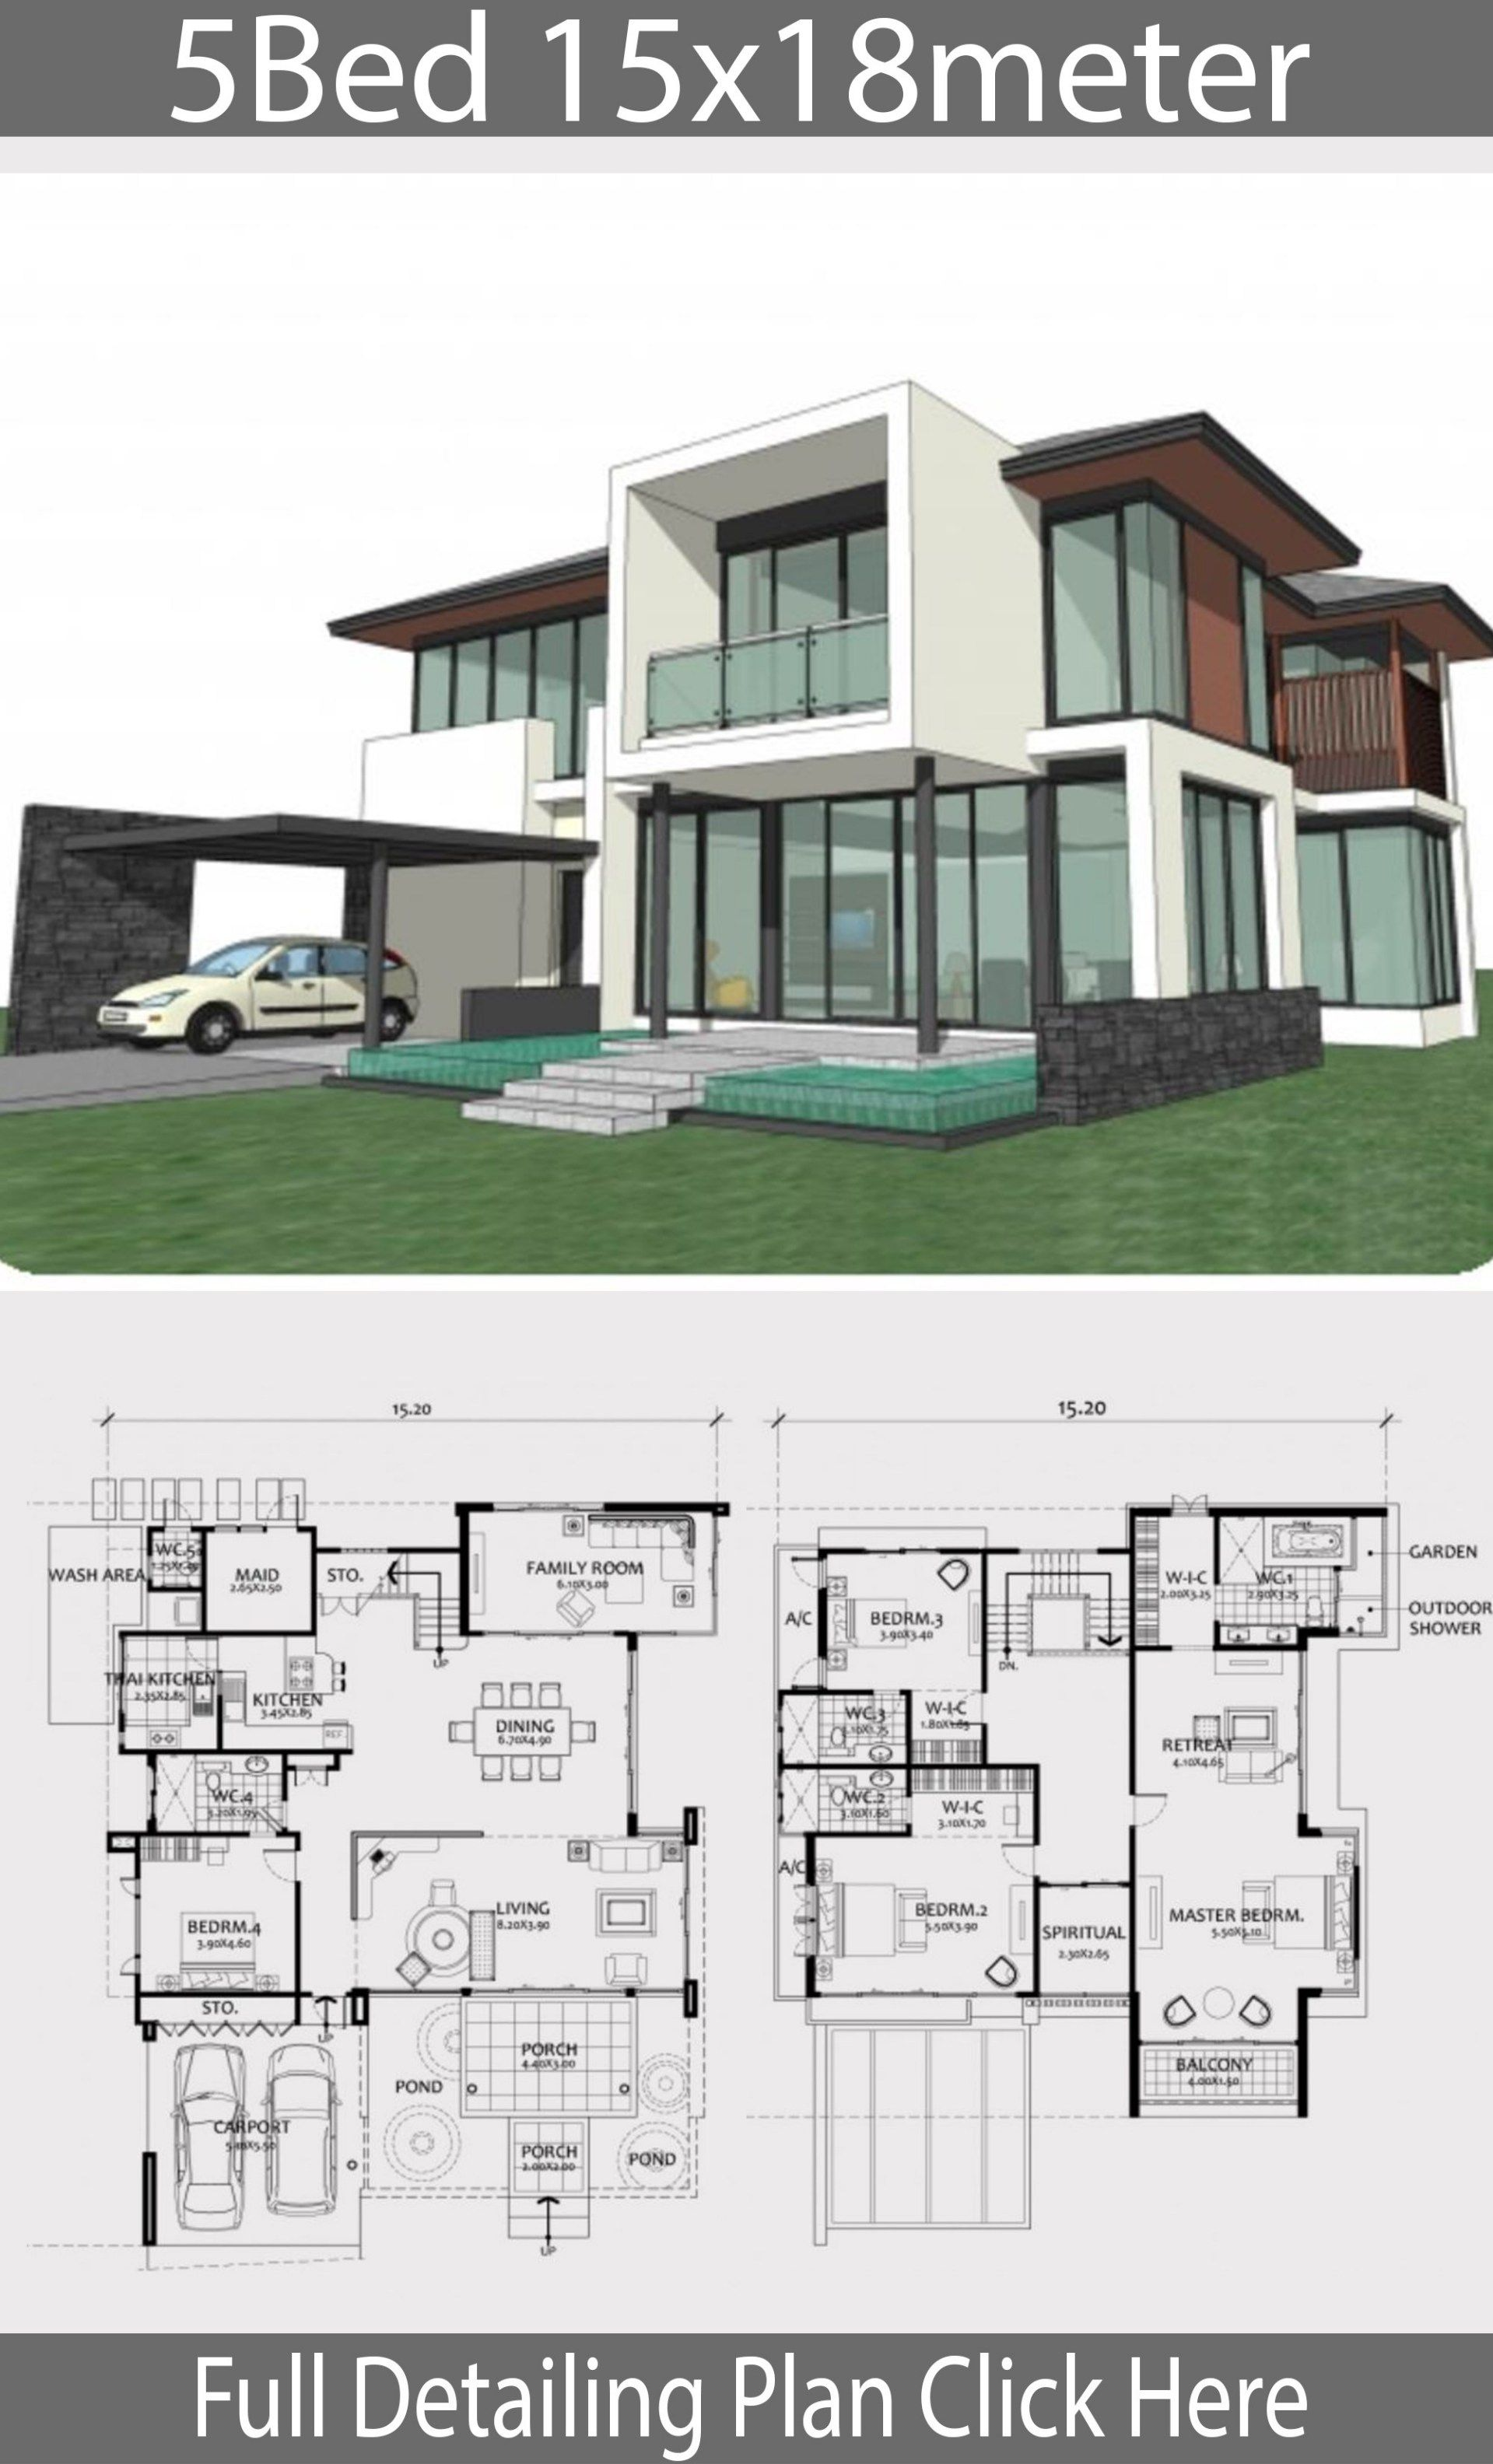 Home Design Plan 15x18m With 5 Bedrooms Home Ideas House Plans Mansion Bungalow House Plans Contemporary House Design